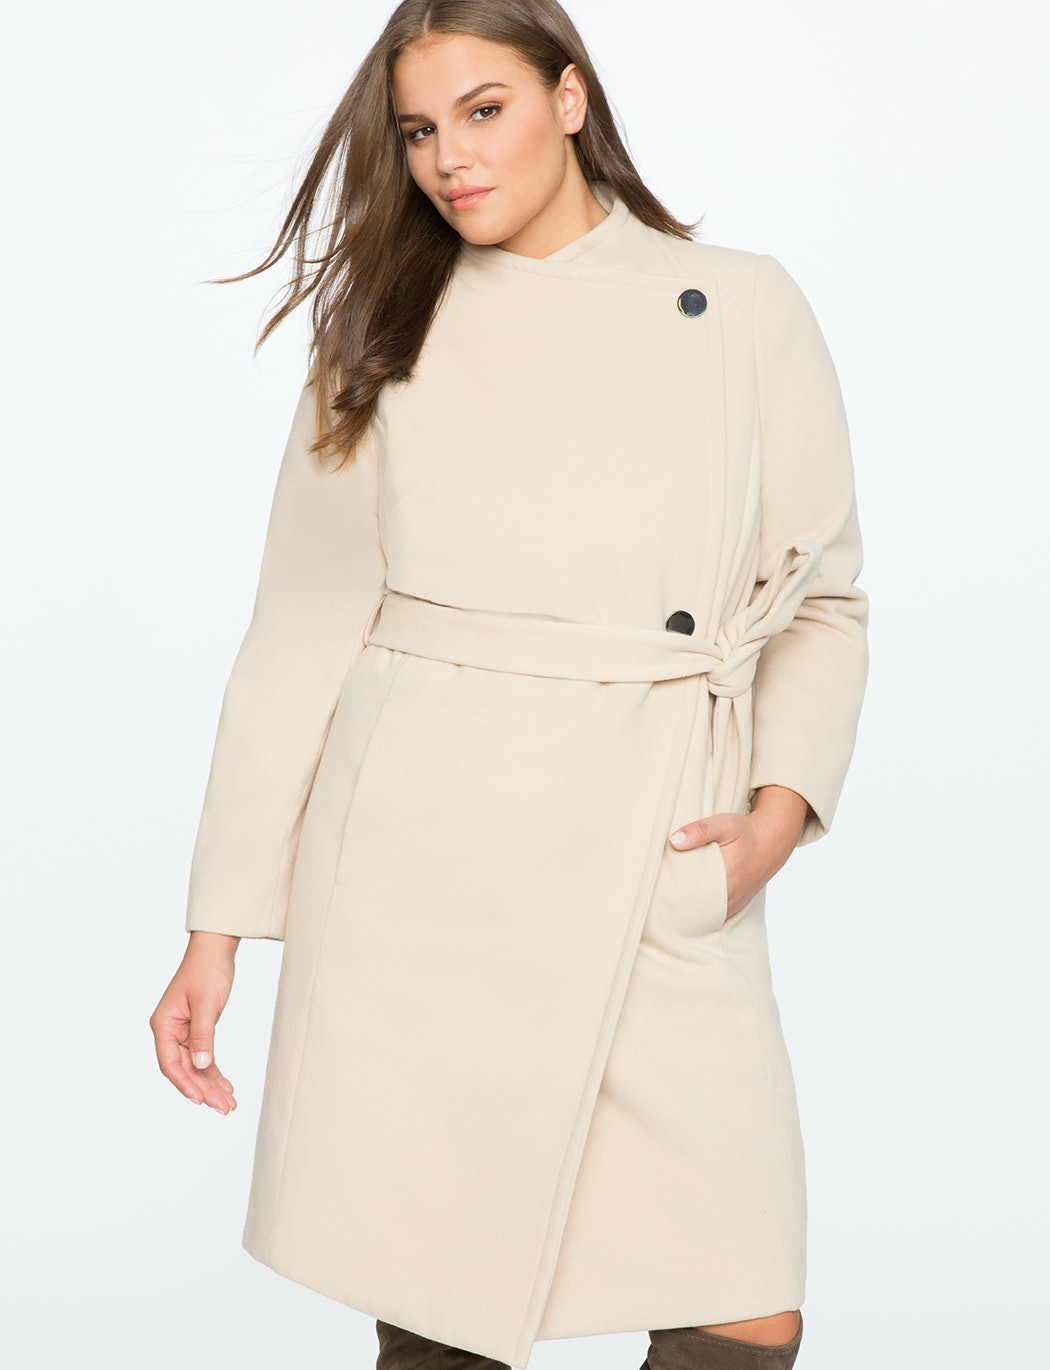 Meghan Markles White Engagement Coat Is Hard To Find But Heres Dan Long Blazer Kate Where Buy A Similar Style